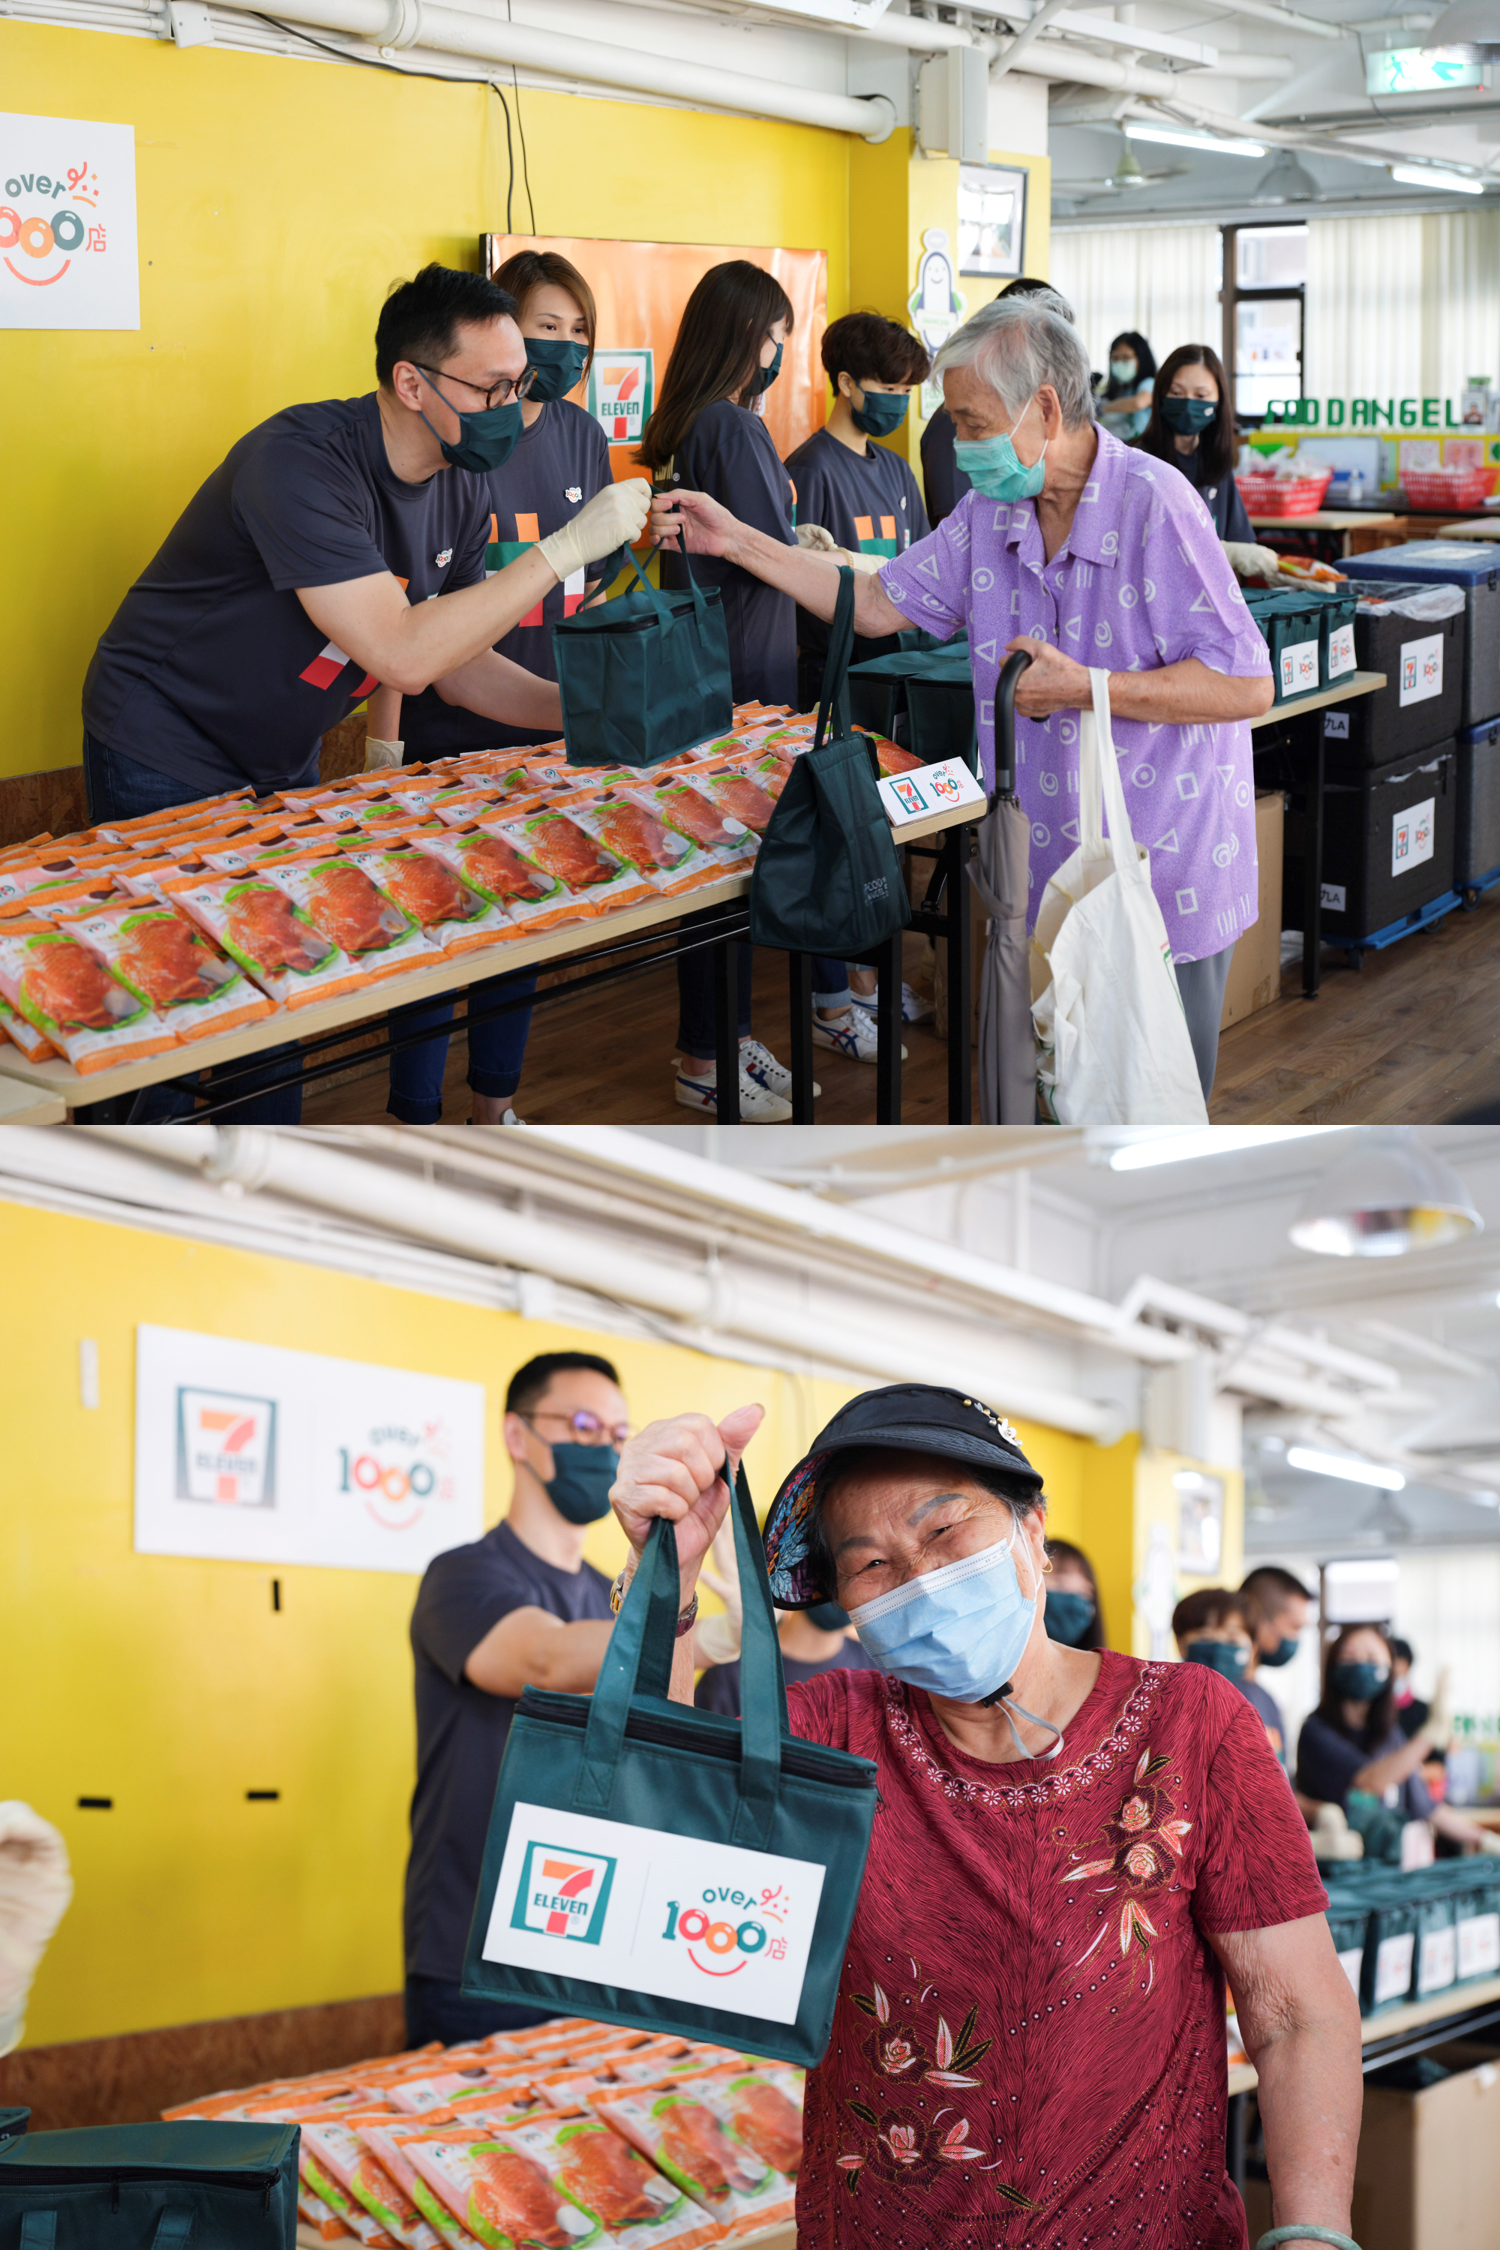 7-Eleven pledges to give 1000 7-SELECT chicken legs every week for 40 consecutive weeks to help those in need in Hong Kong